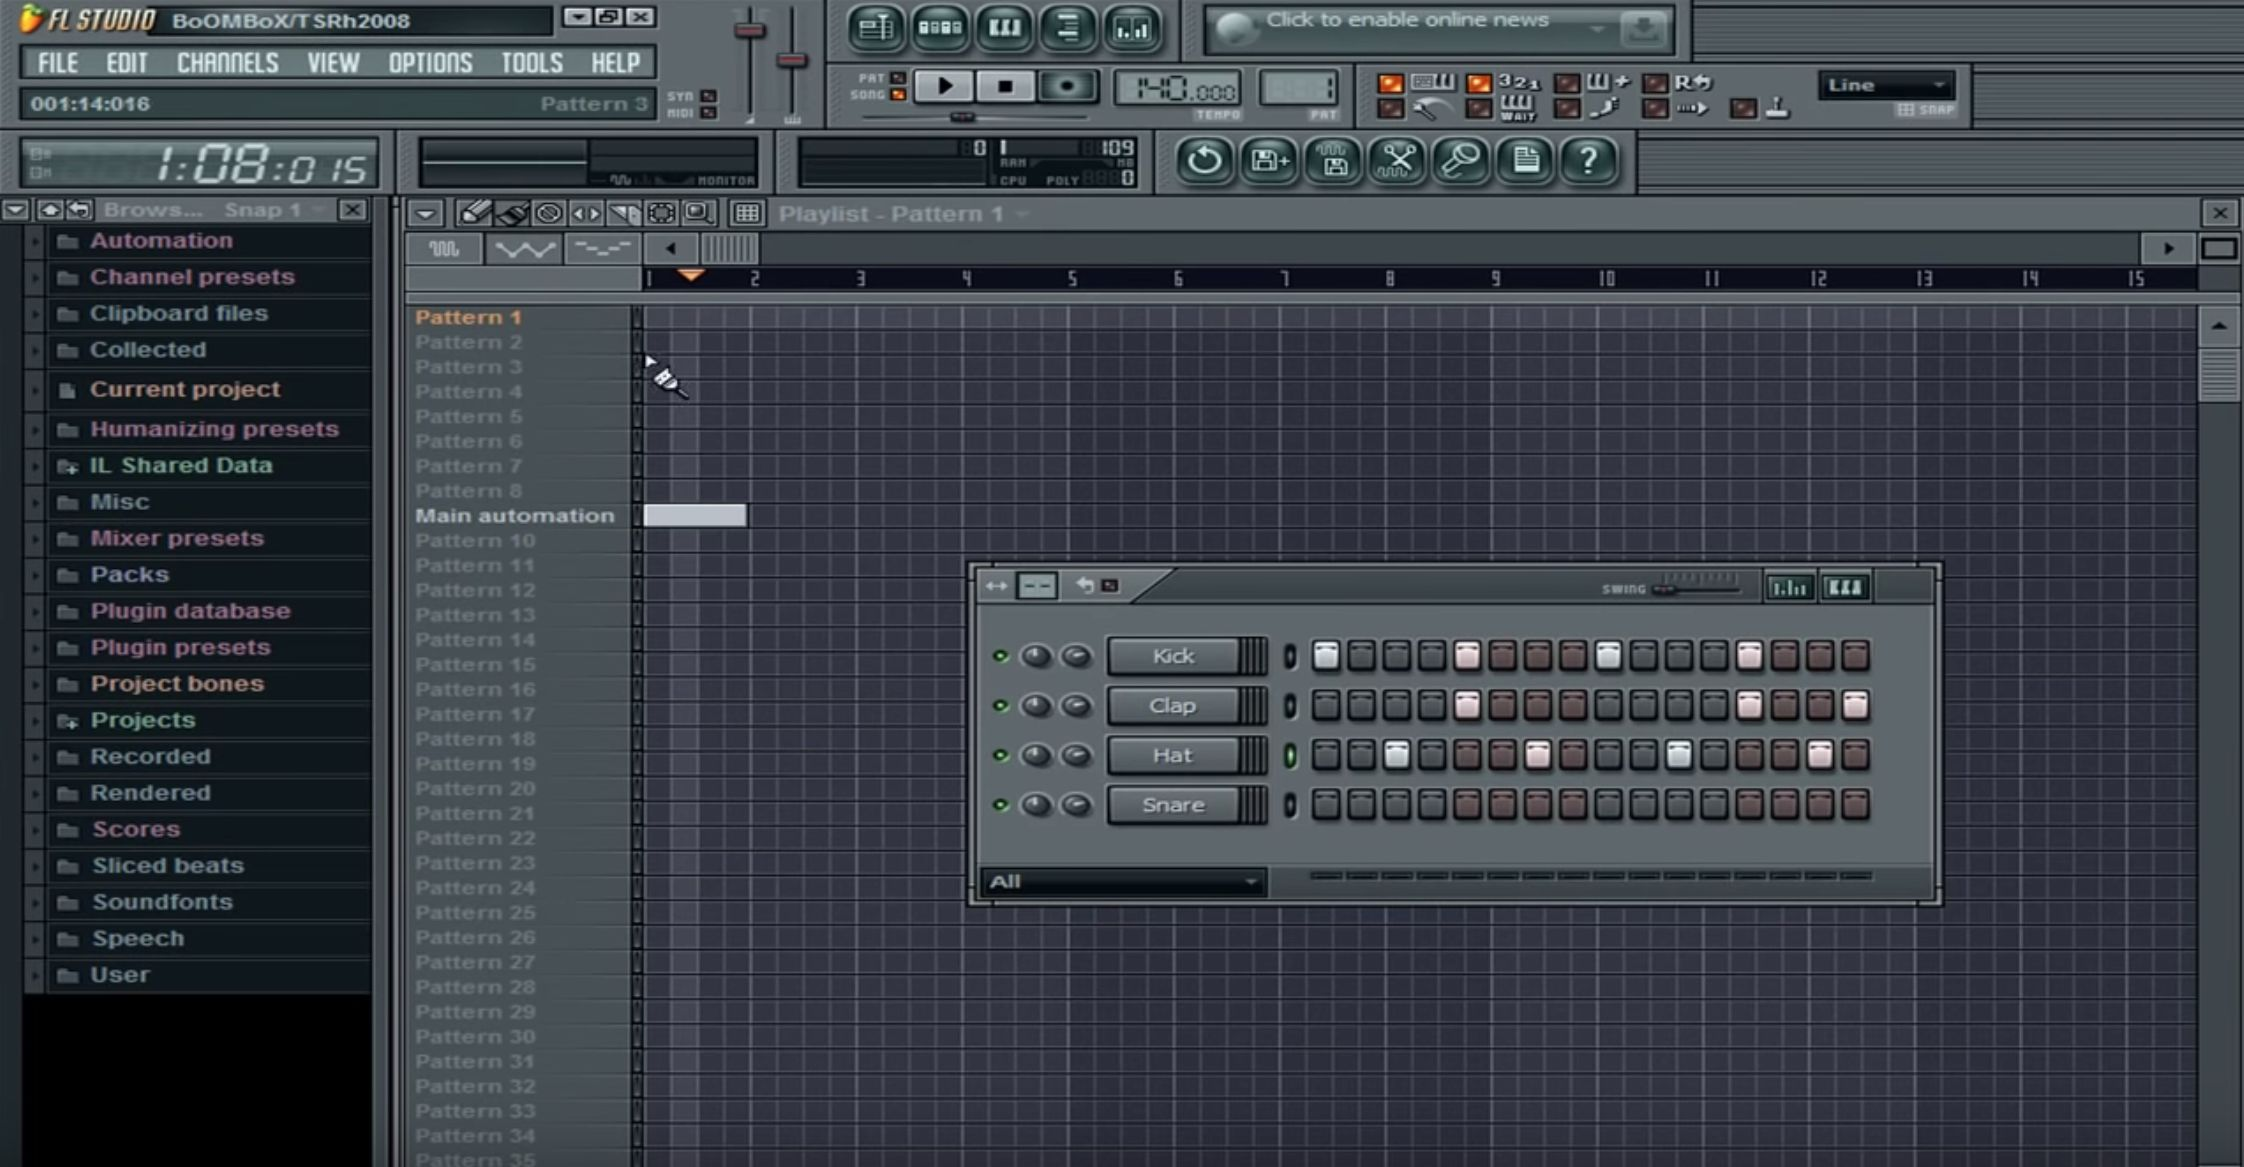 FL Studio 8. Фото: JakeNoluv/Youtube